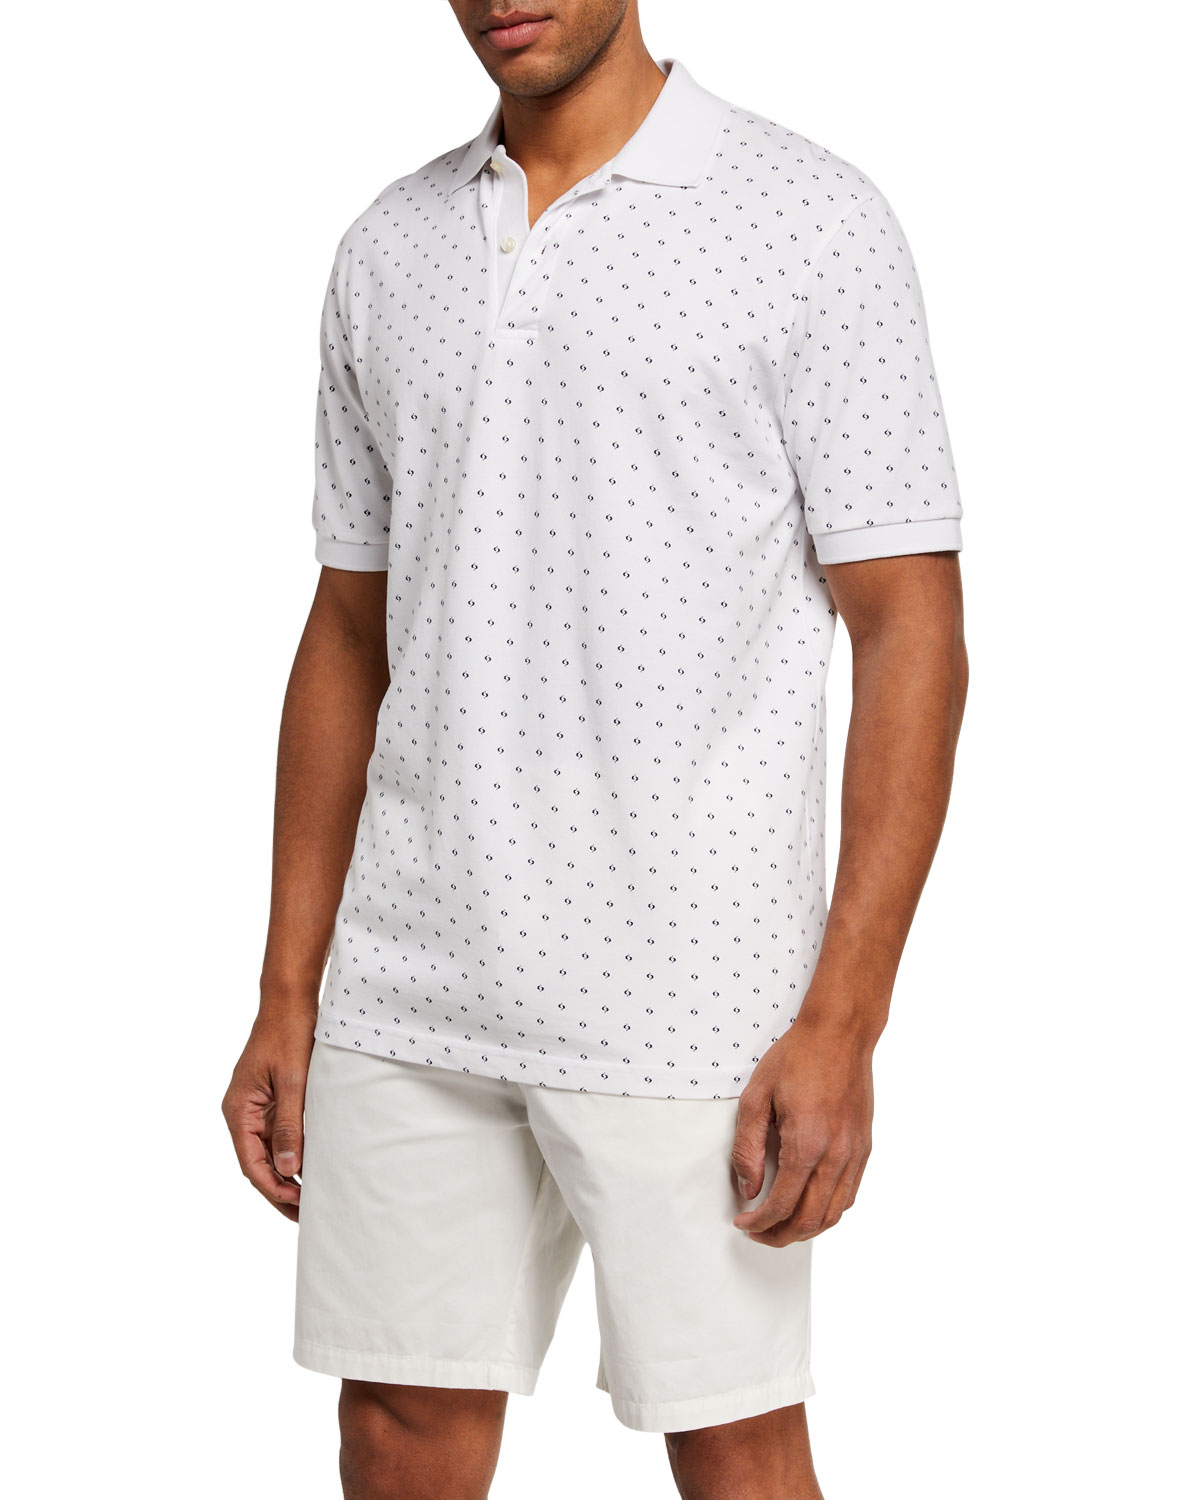 Scotch & Soda Men's Pique Allover-Print Polo Shirt